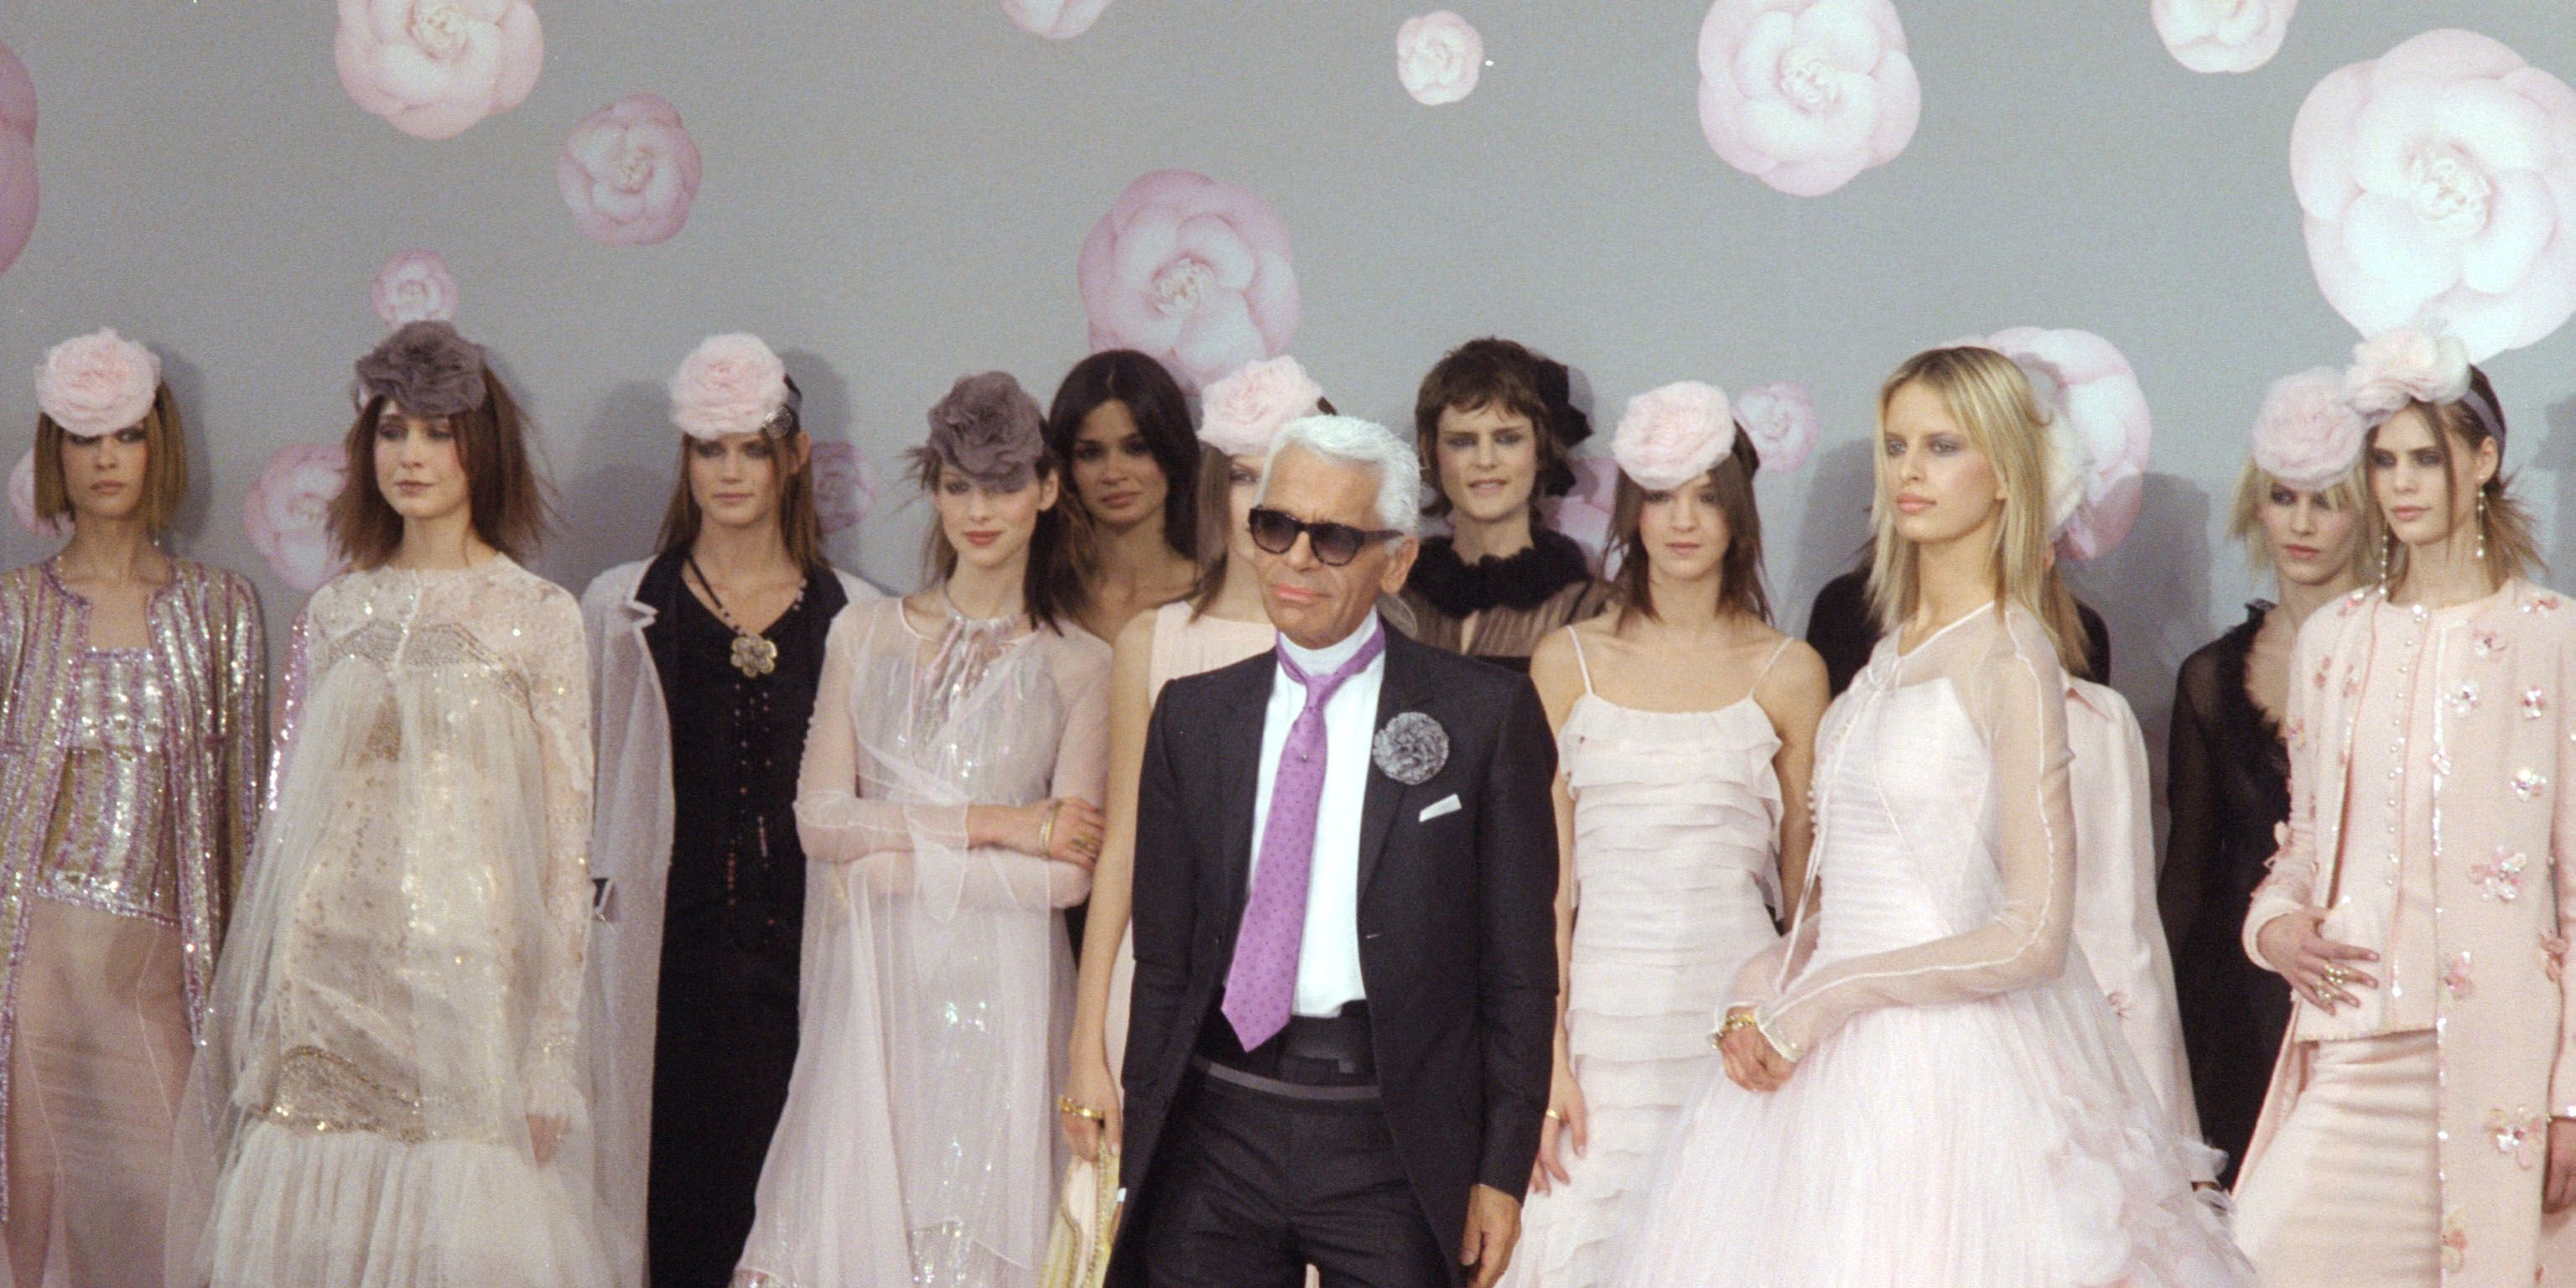 Chanel 2002 Spring/Summer 'Haute Couture' Fashion Show